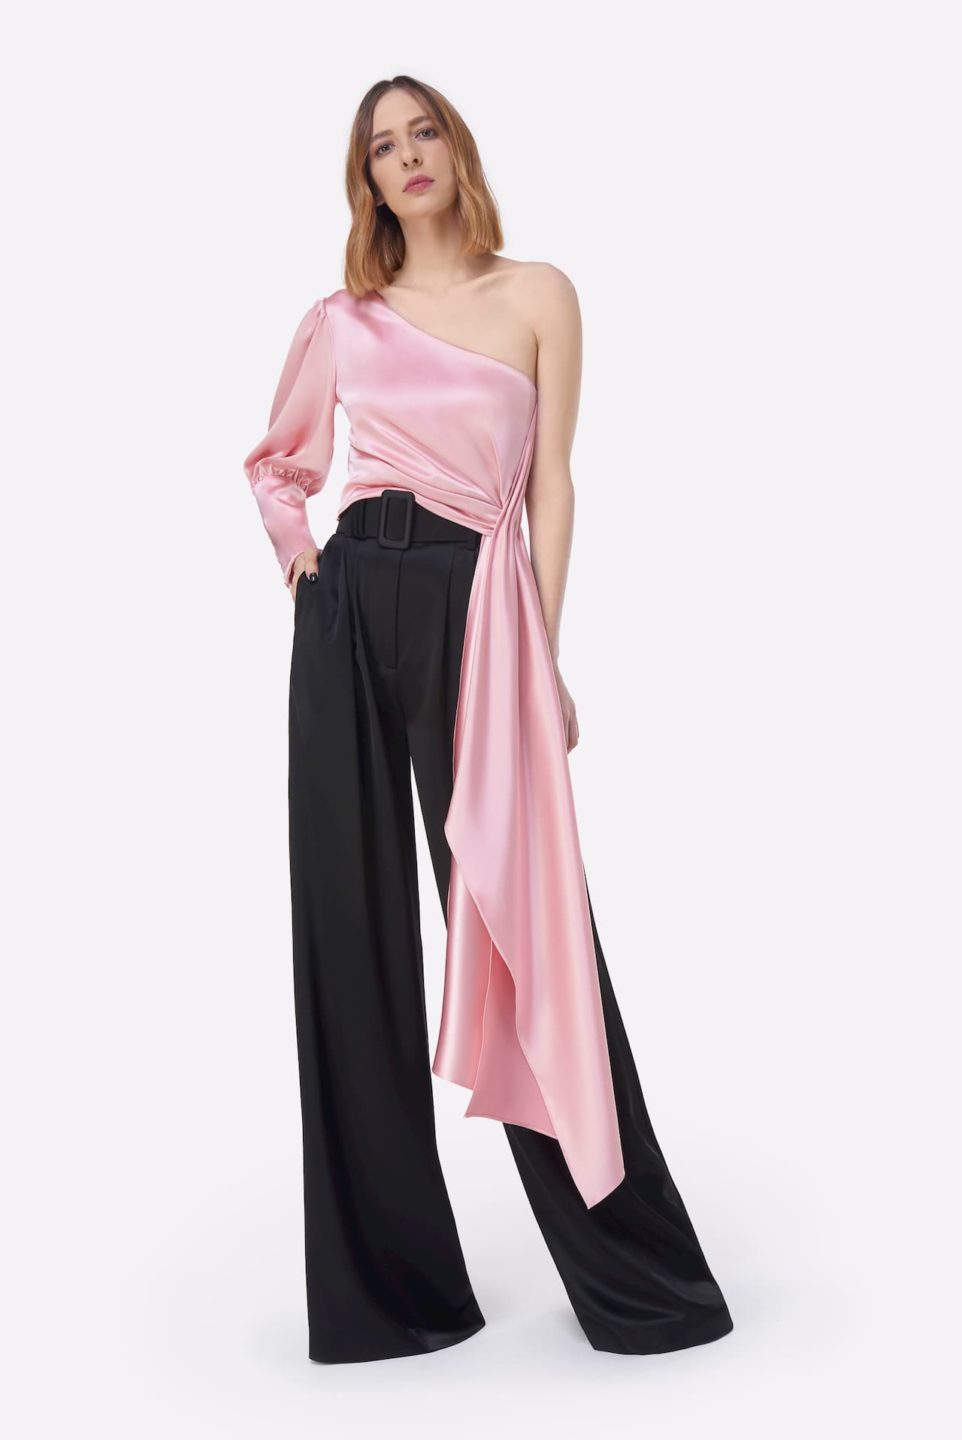 Athelina PS2130 Pink Satin One-Shoulder Top with Cuffed Sleeve & Extended Waist Sash